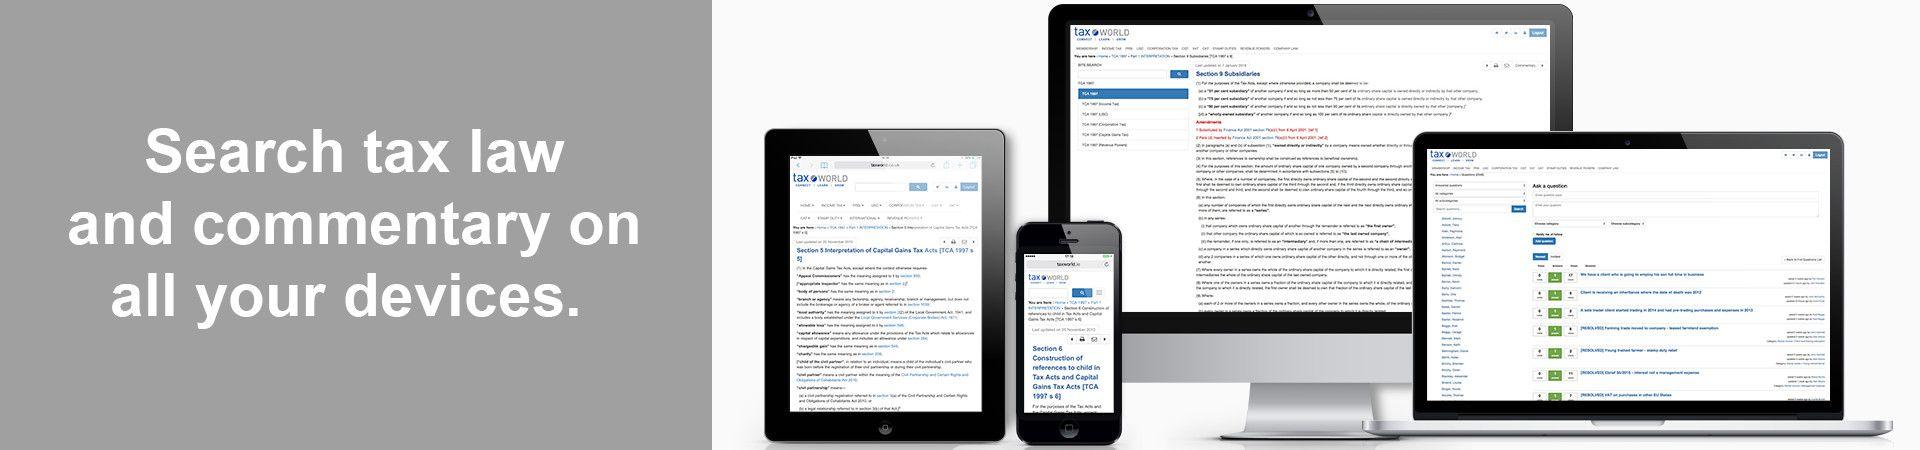 Search the tax code and commentary on all your devices